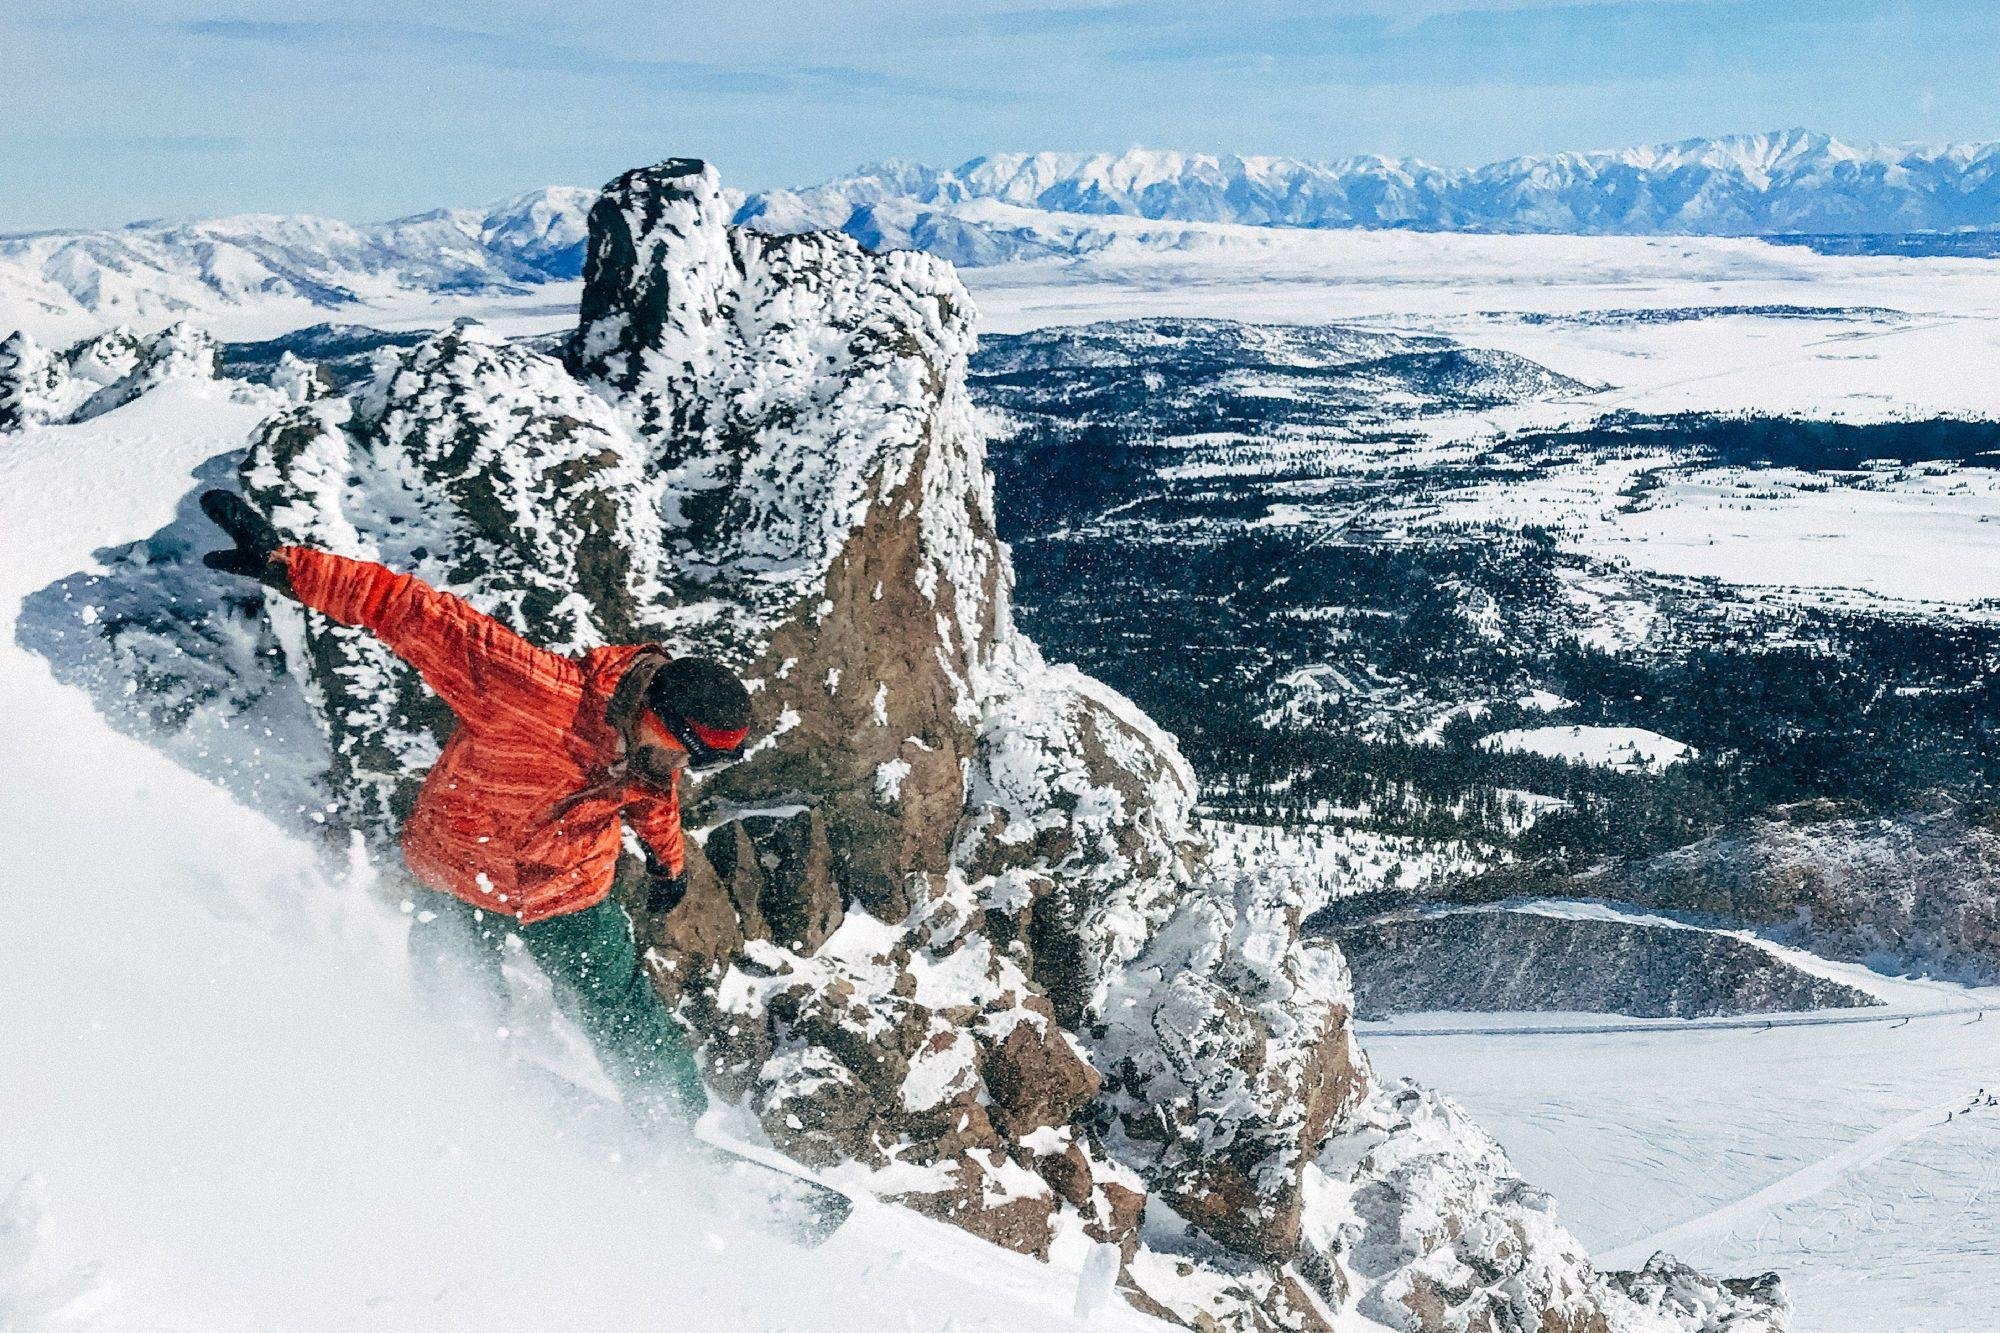 National skiers: the present and future of mountain tourism